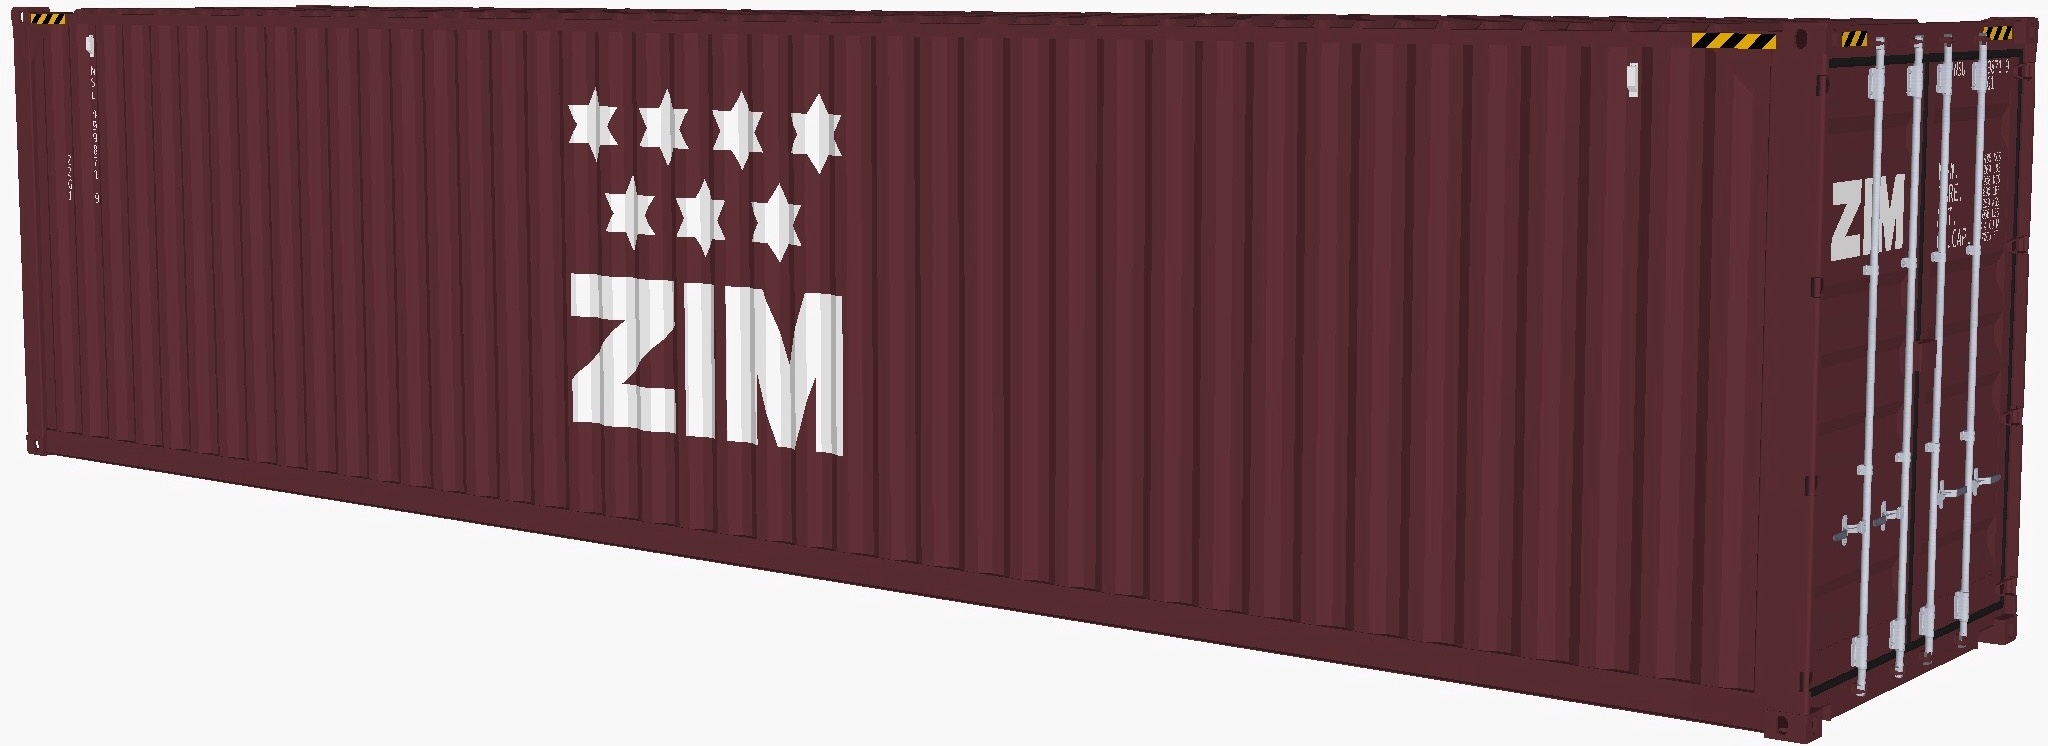 Zim_container.jpeg